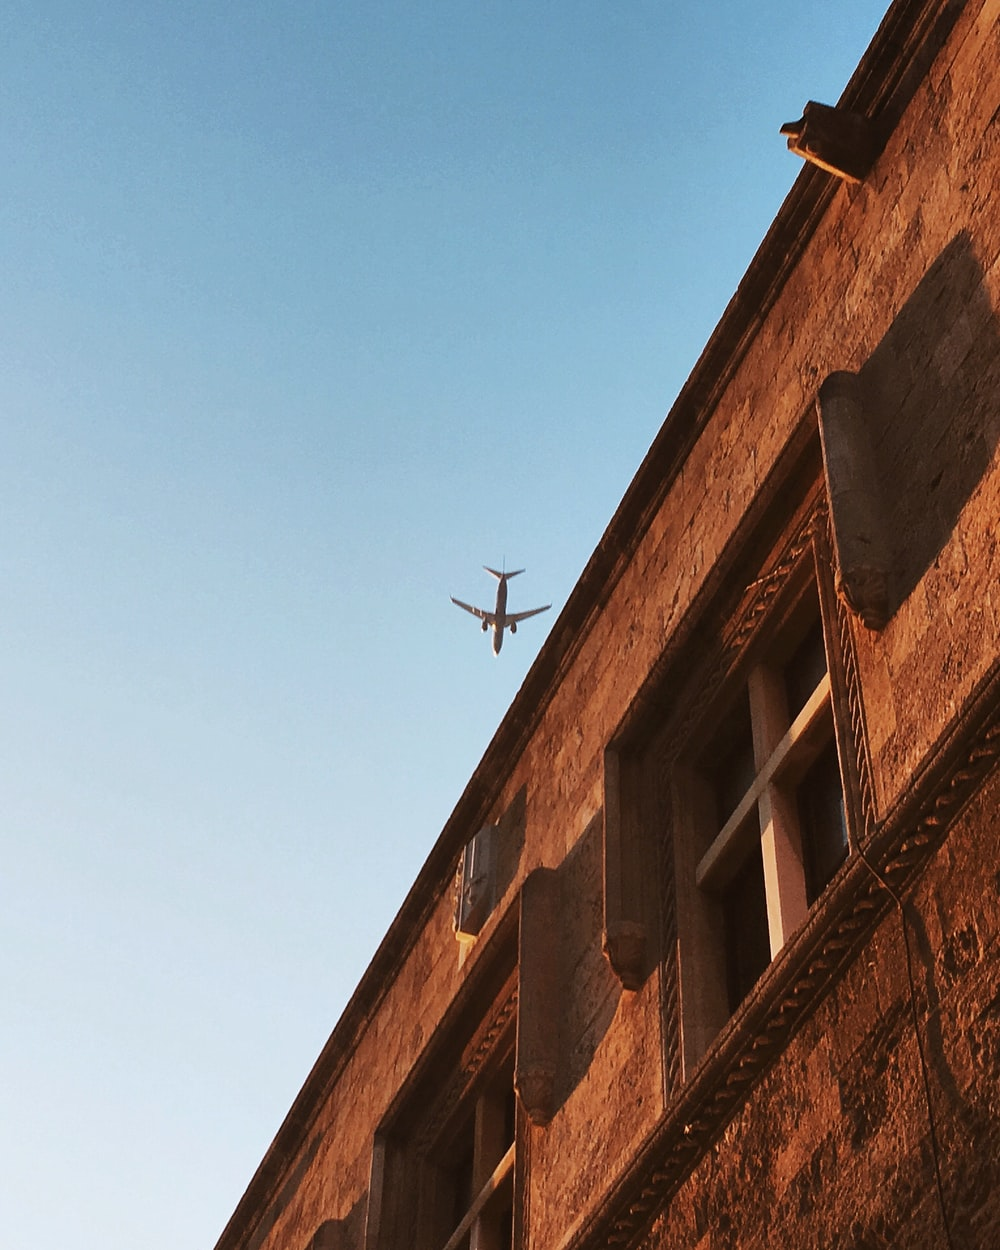 black bird flying over brown concrete building during daytime